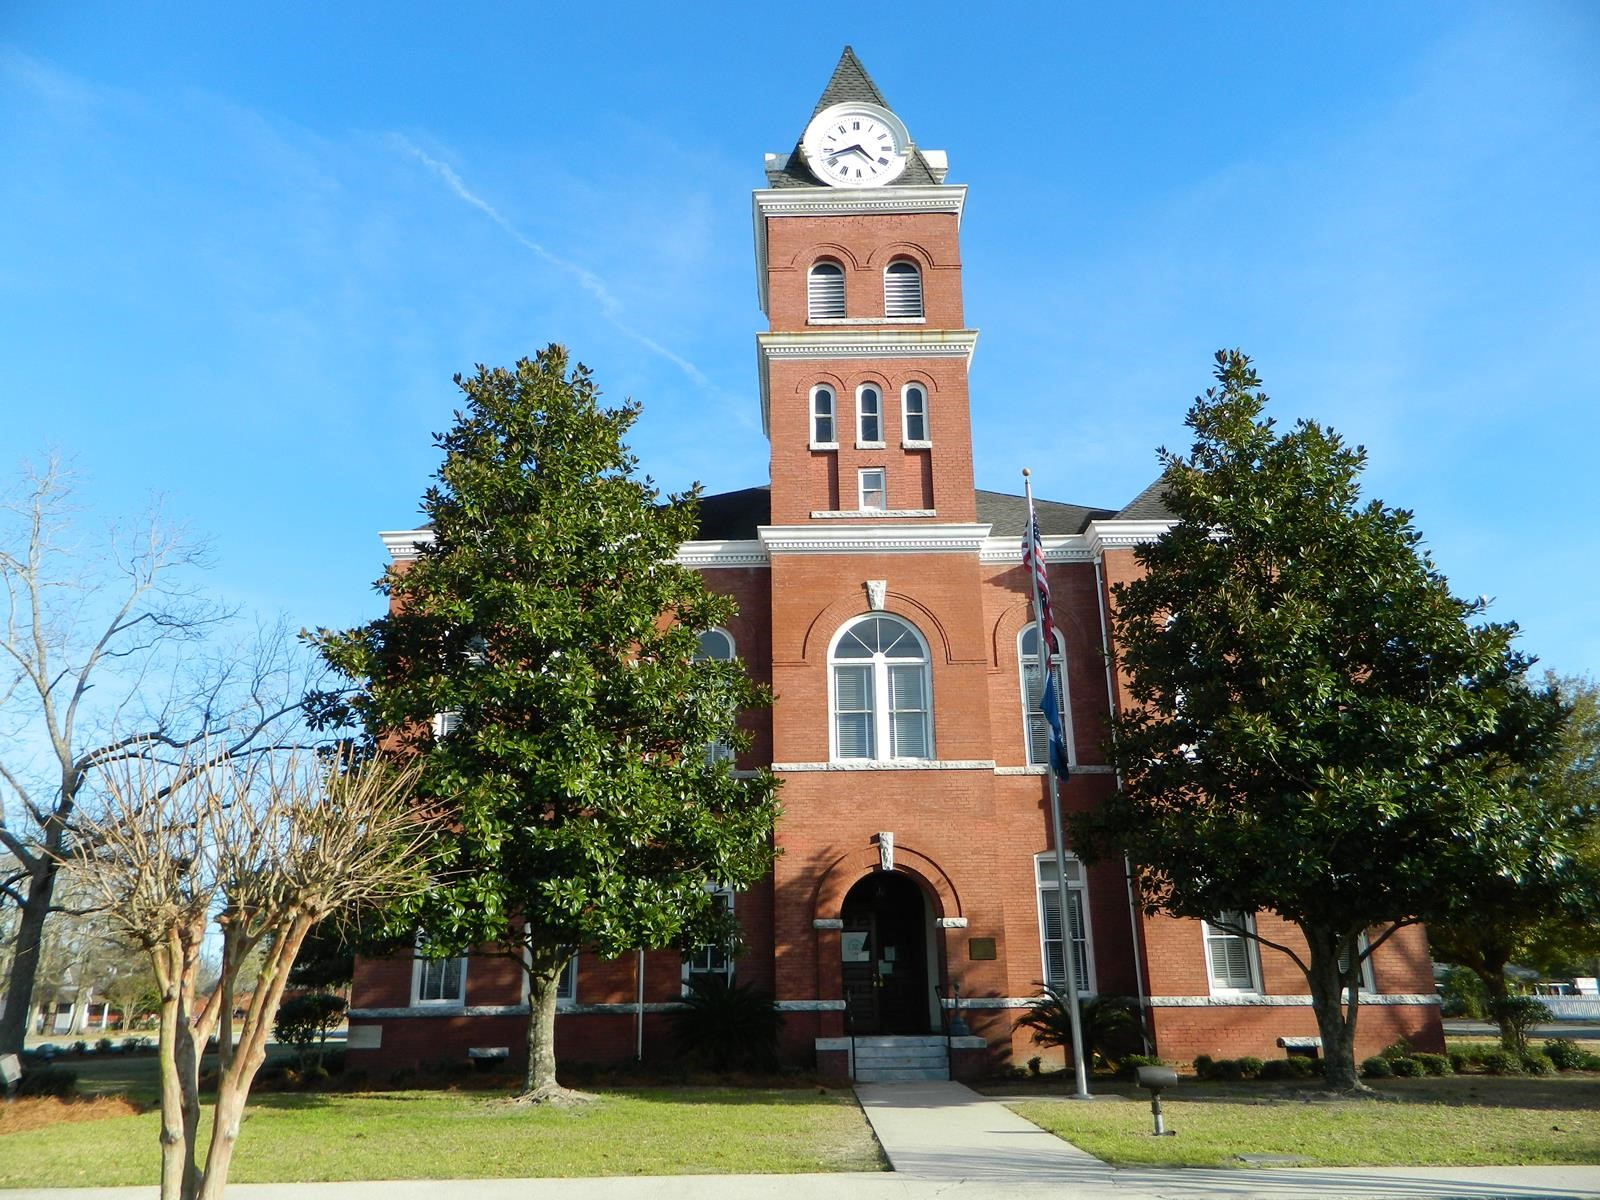 The Wayne County Courthouse was built in 1902-1903.